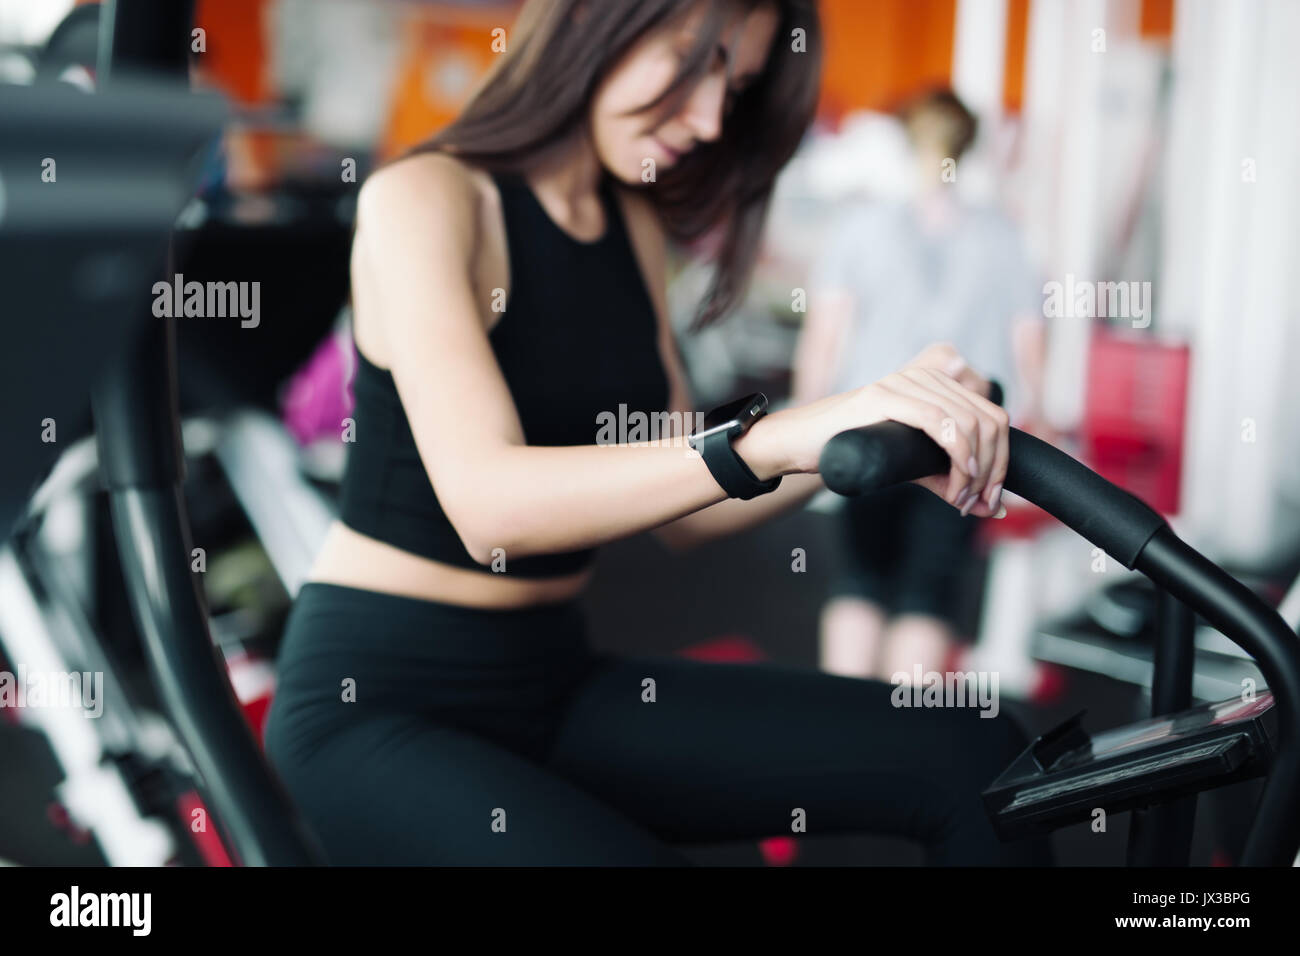 Woman 20s wearing smart watch working out on exercise bike 20s Stock